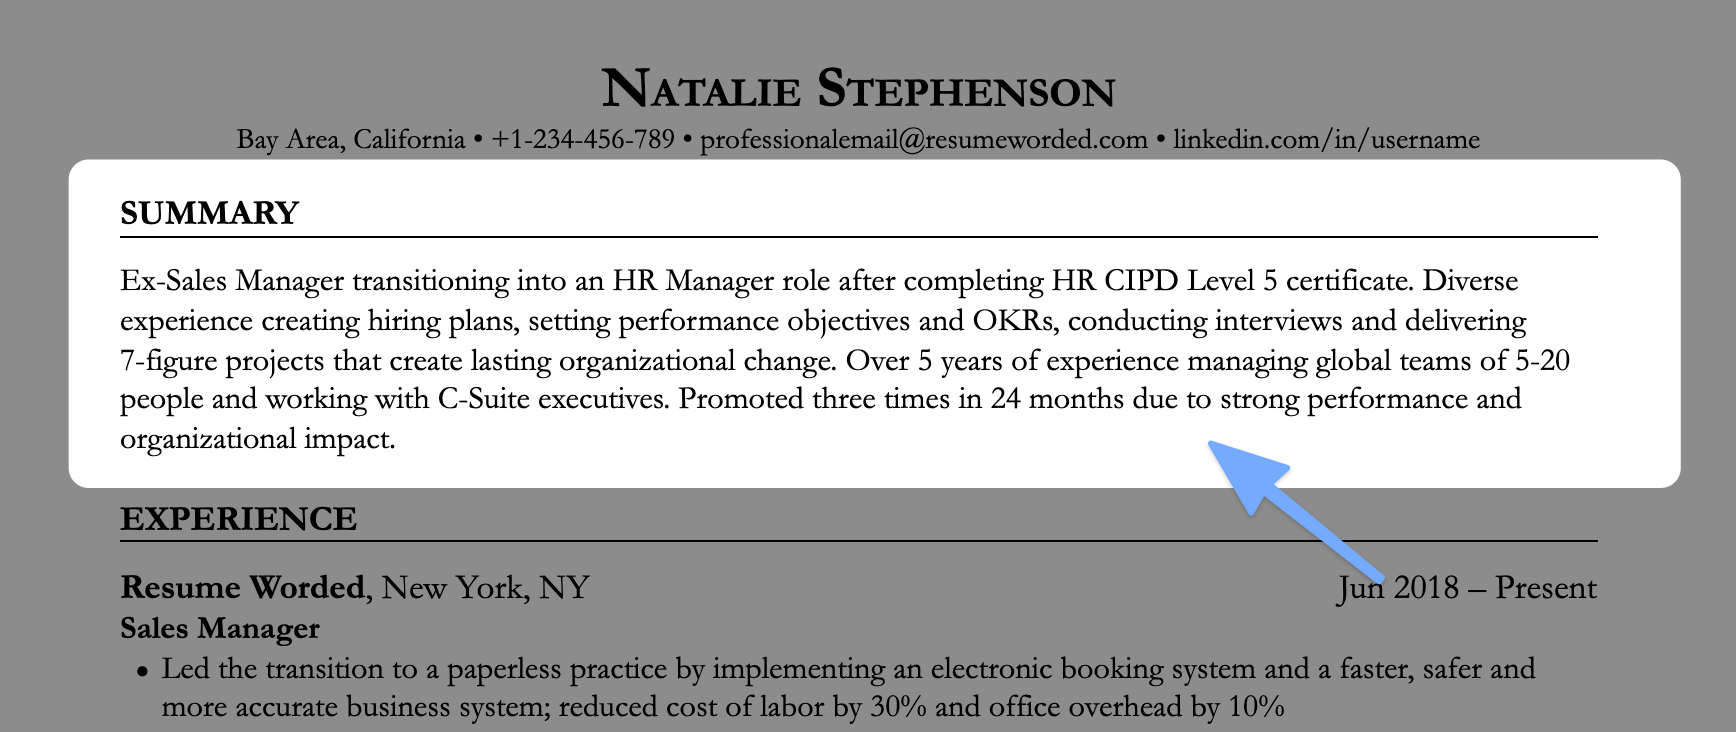 An example of a resume opening statement for a job seeker who's changing jobs